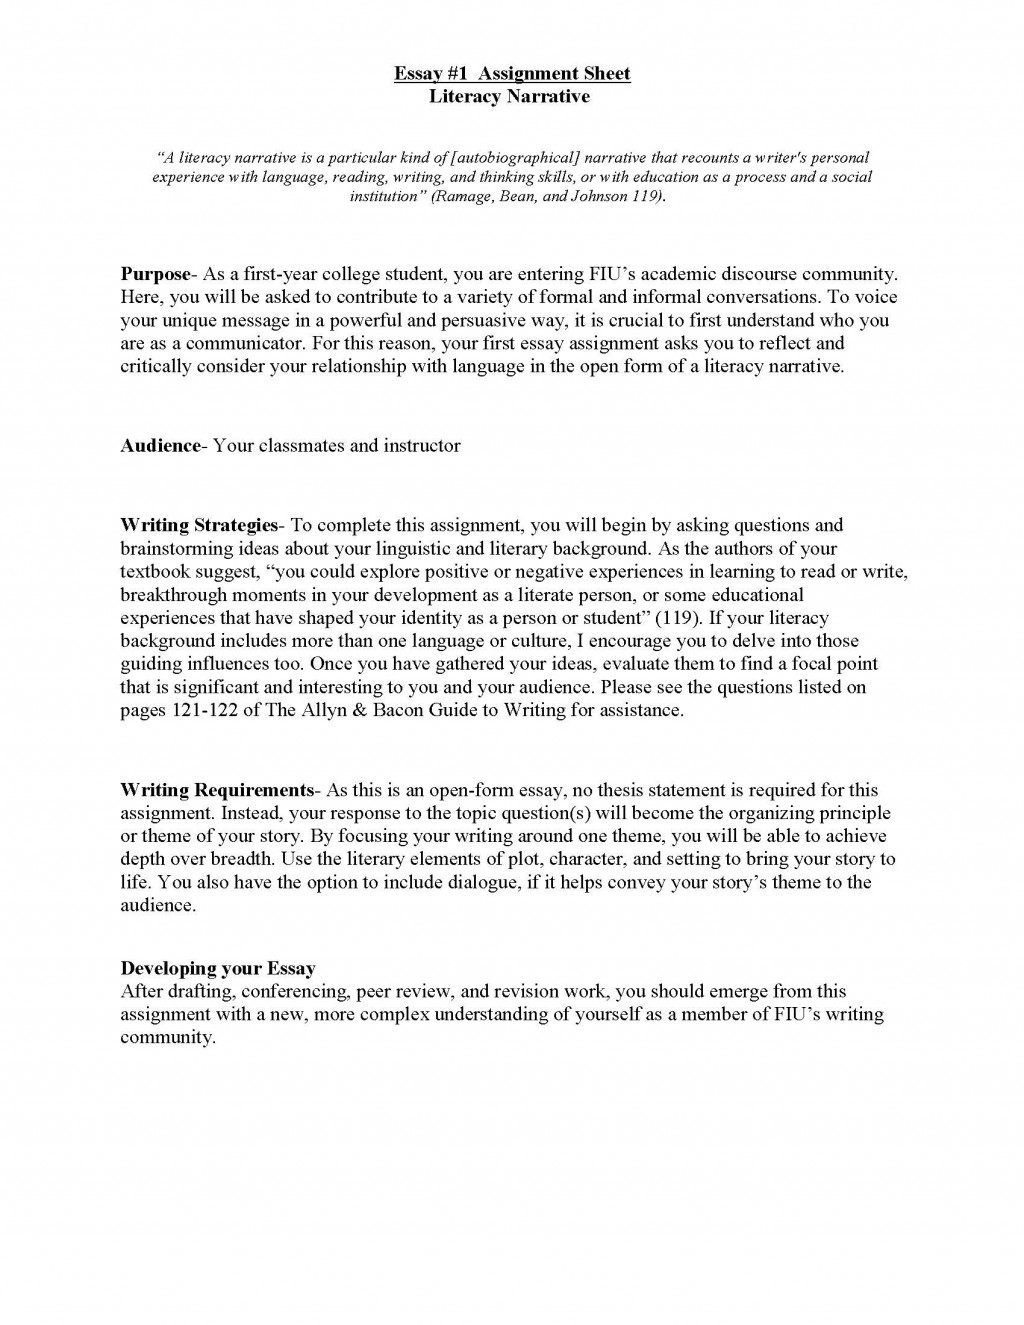 021 Essay Example Literacy Narrative Unit Assignment Spring 2012 Page 1 Essays Top Examples Spm Short About Life College Large